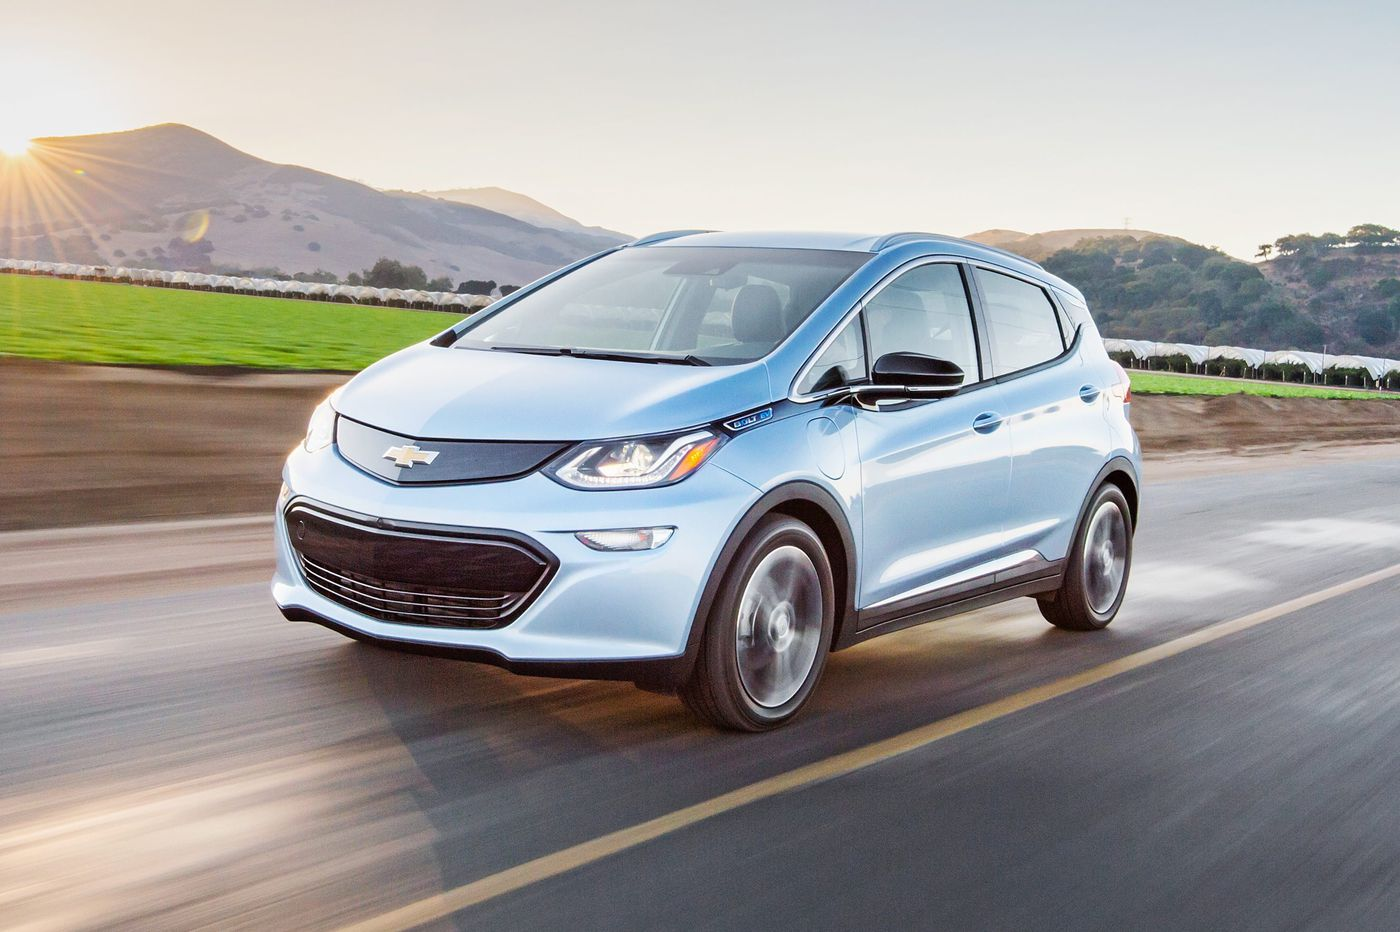 2018 Chevrolet Bolt EV: An everyday electric econobox | Scott Sturgis